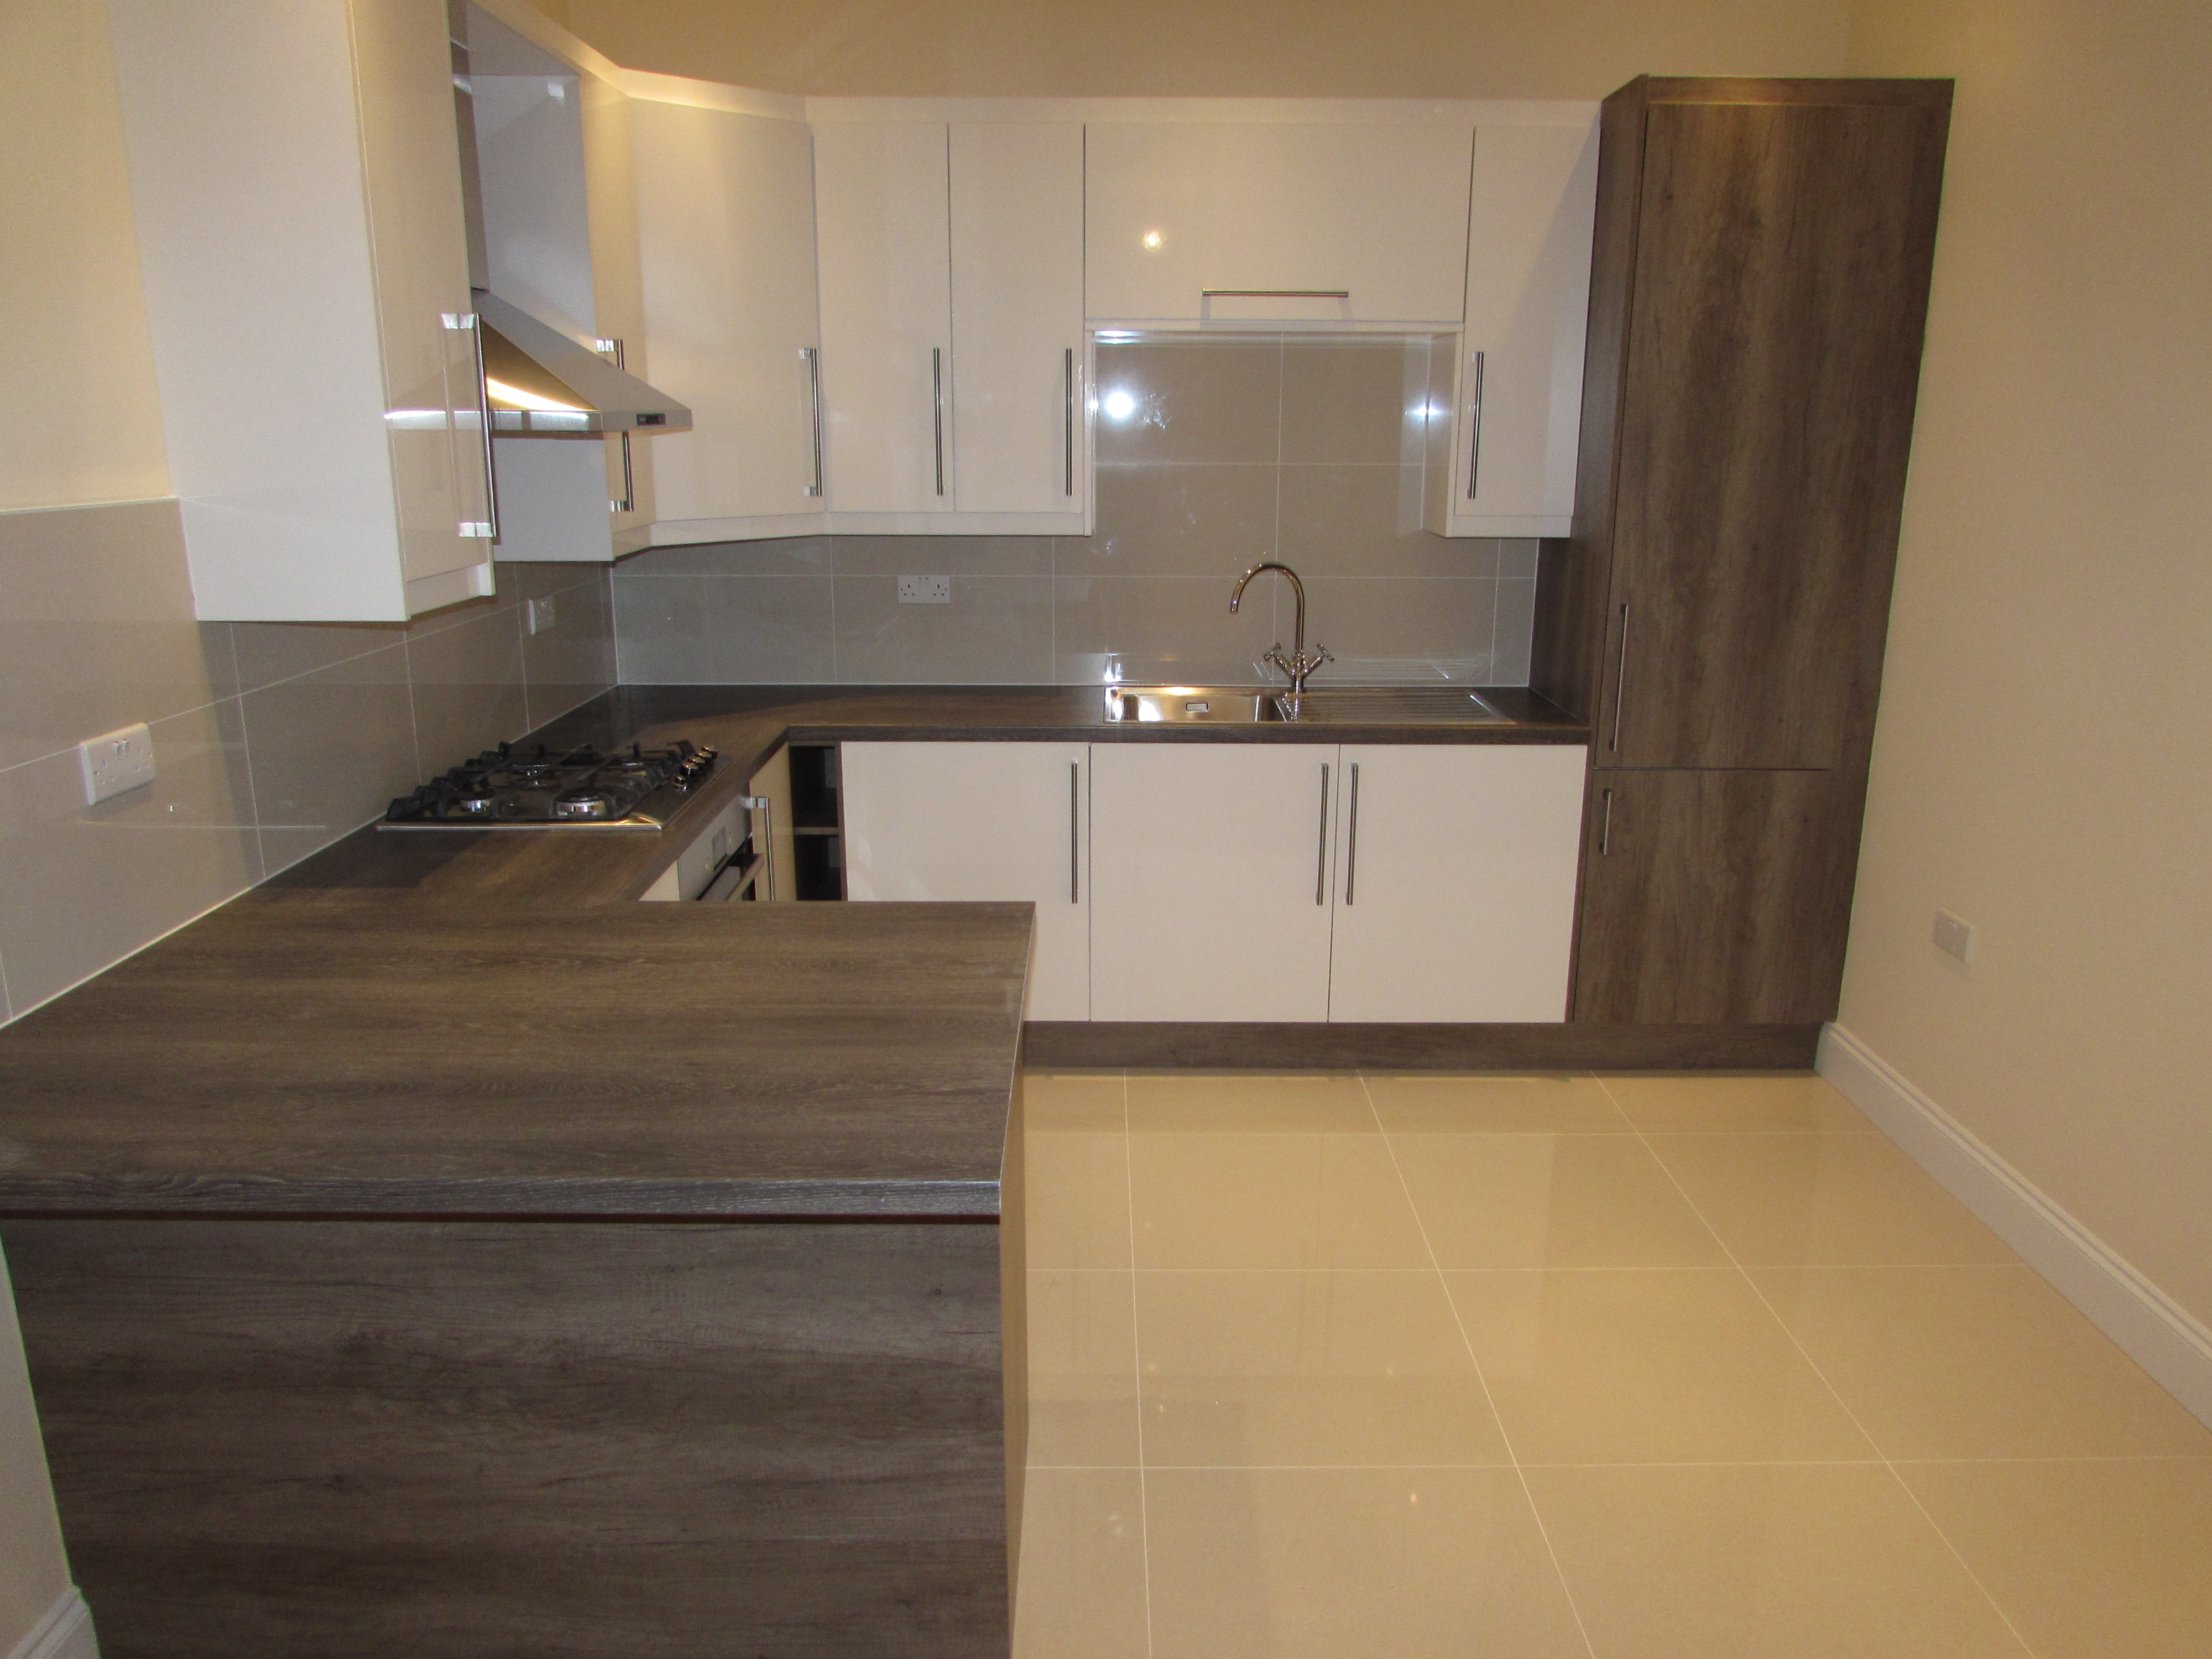 Two Bedroom Flat in Slough